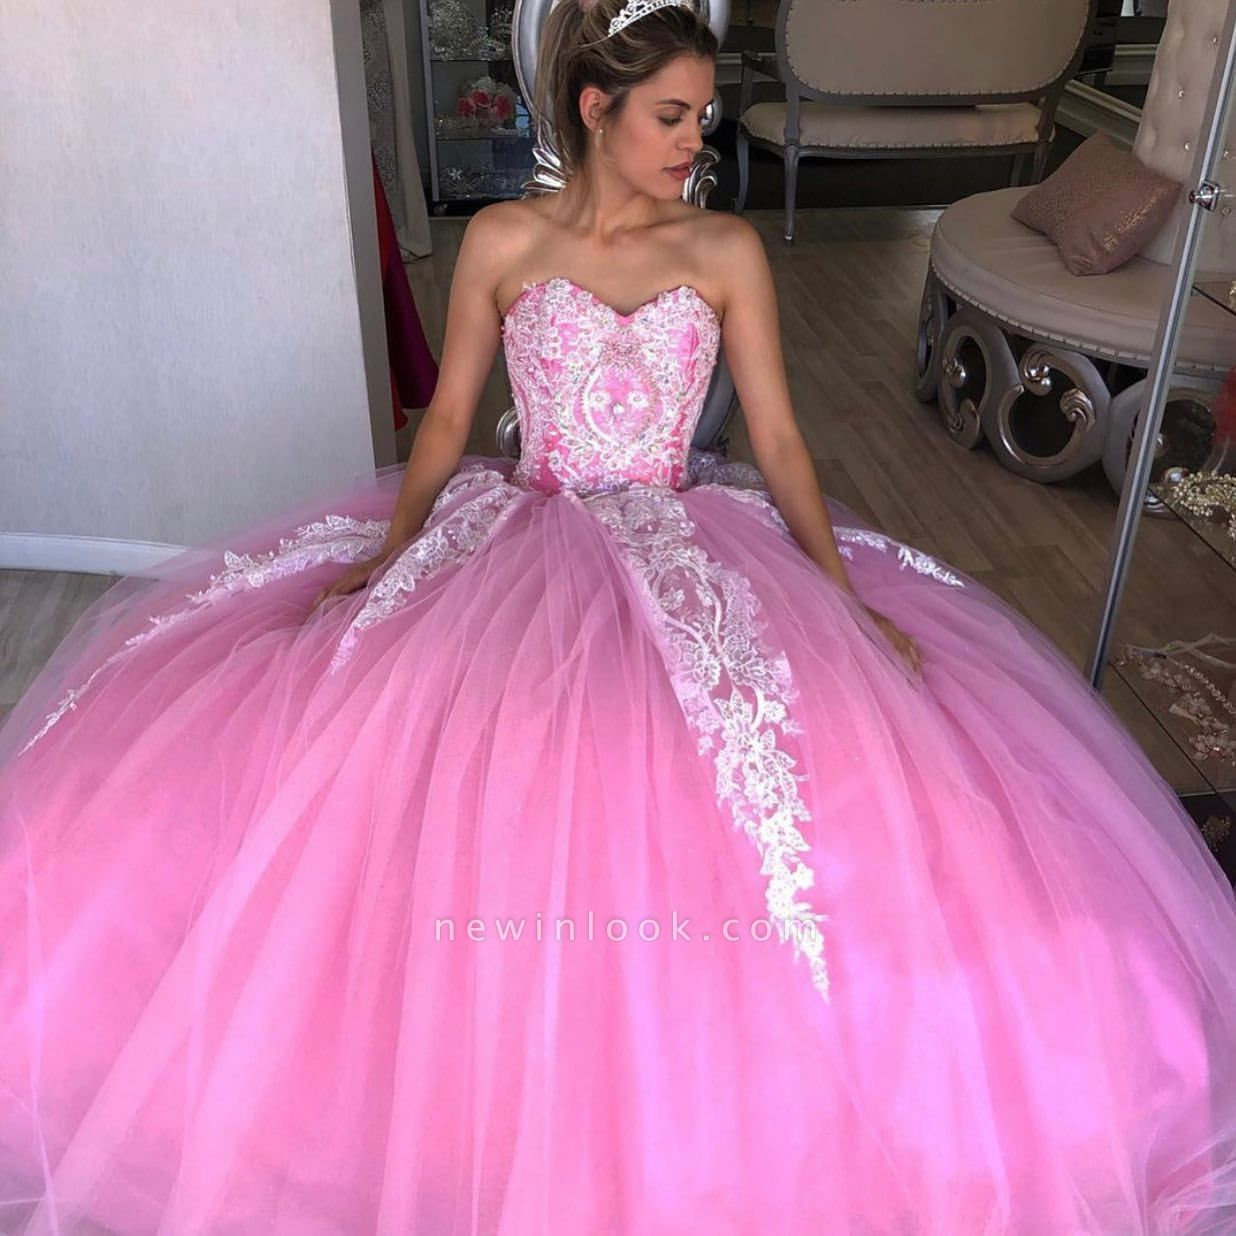 Exquisite Sweetheart Appliques Ball Gown Sweet 16 Dresses | Tulle Sleeveless Quinceanera Dresses Long